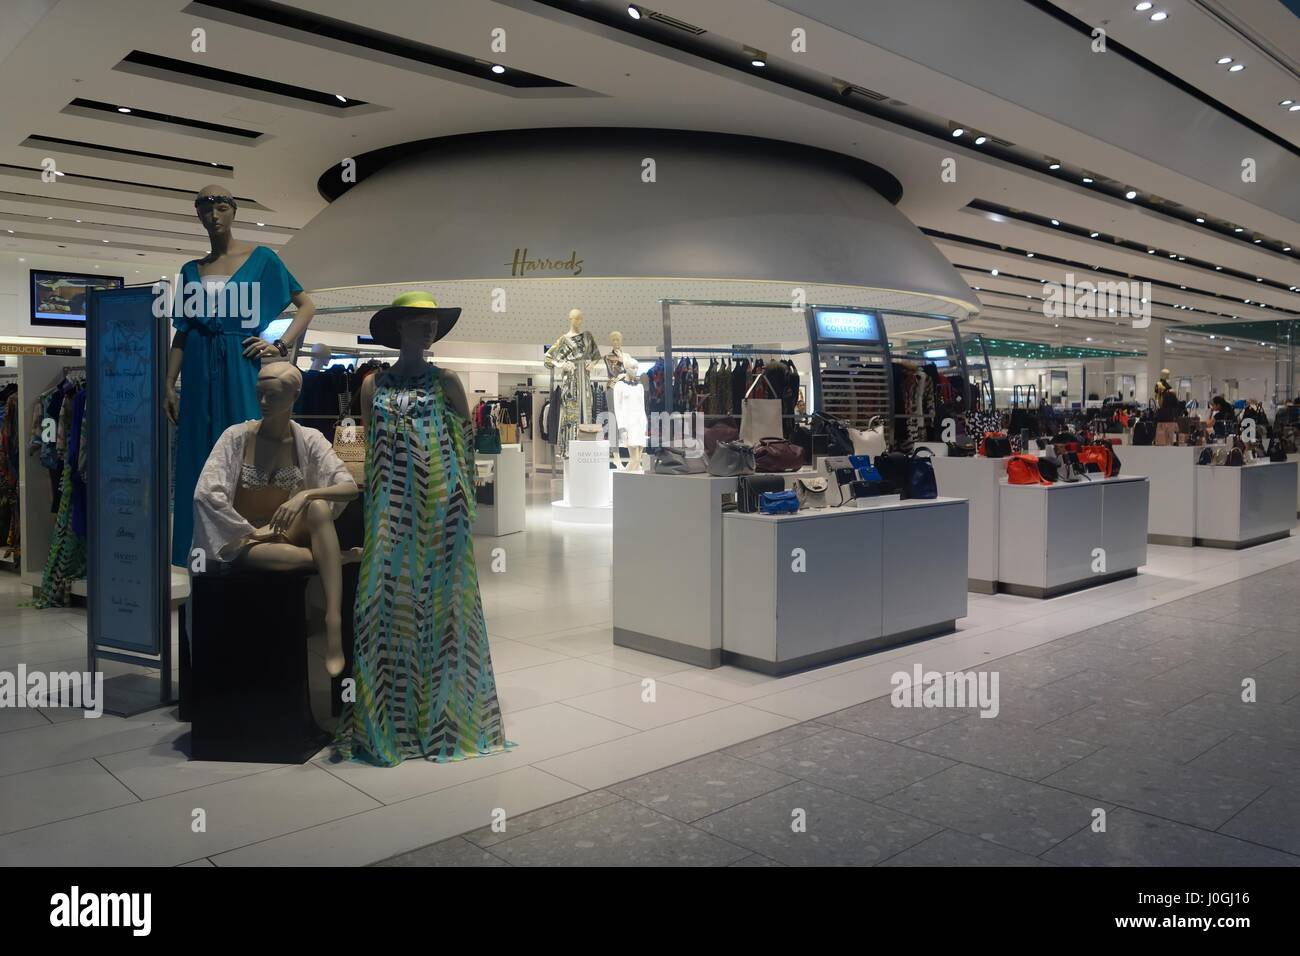 Open plan layout of the Harrods store in terminal five London Heathrow international airport, England, UK - Stock Image